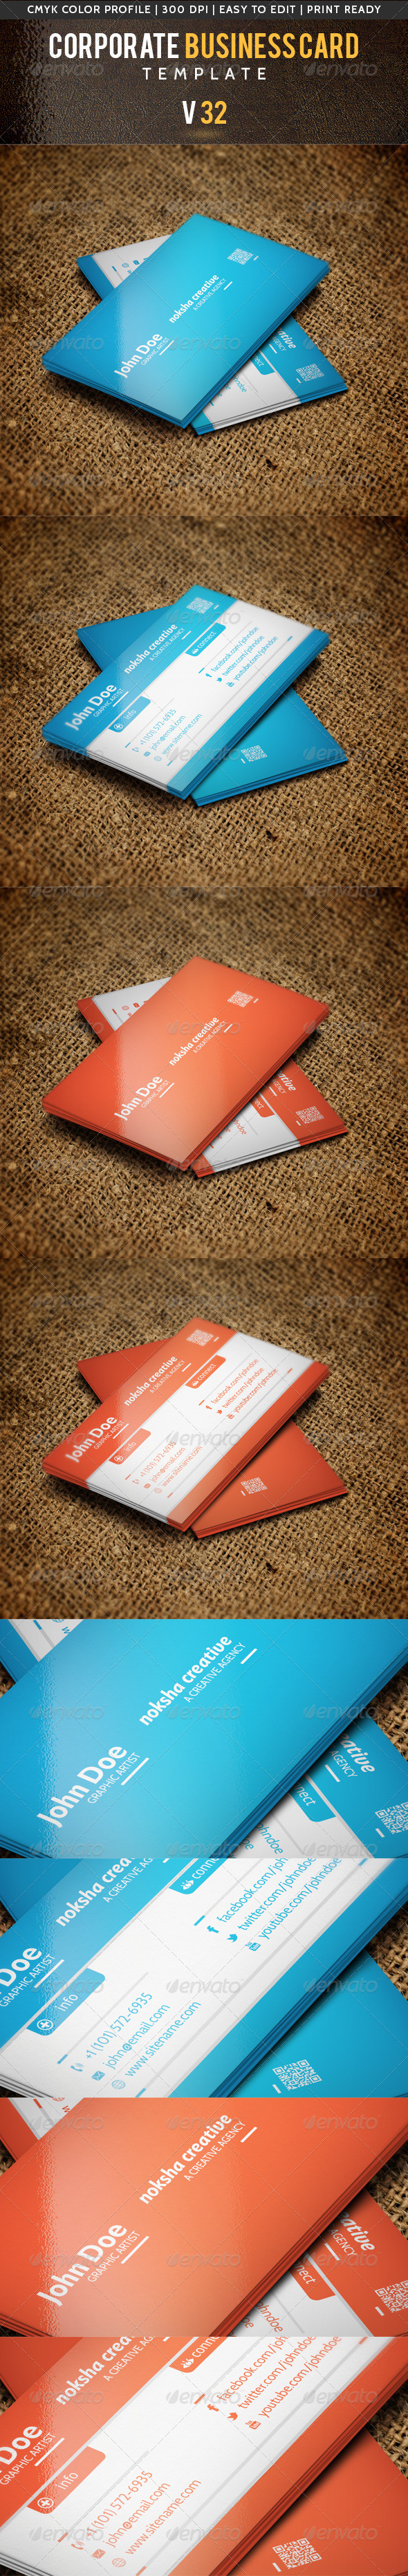 GraphicRiver Corporate Business Card V 32 5494335